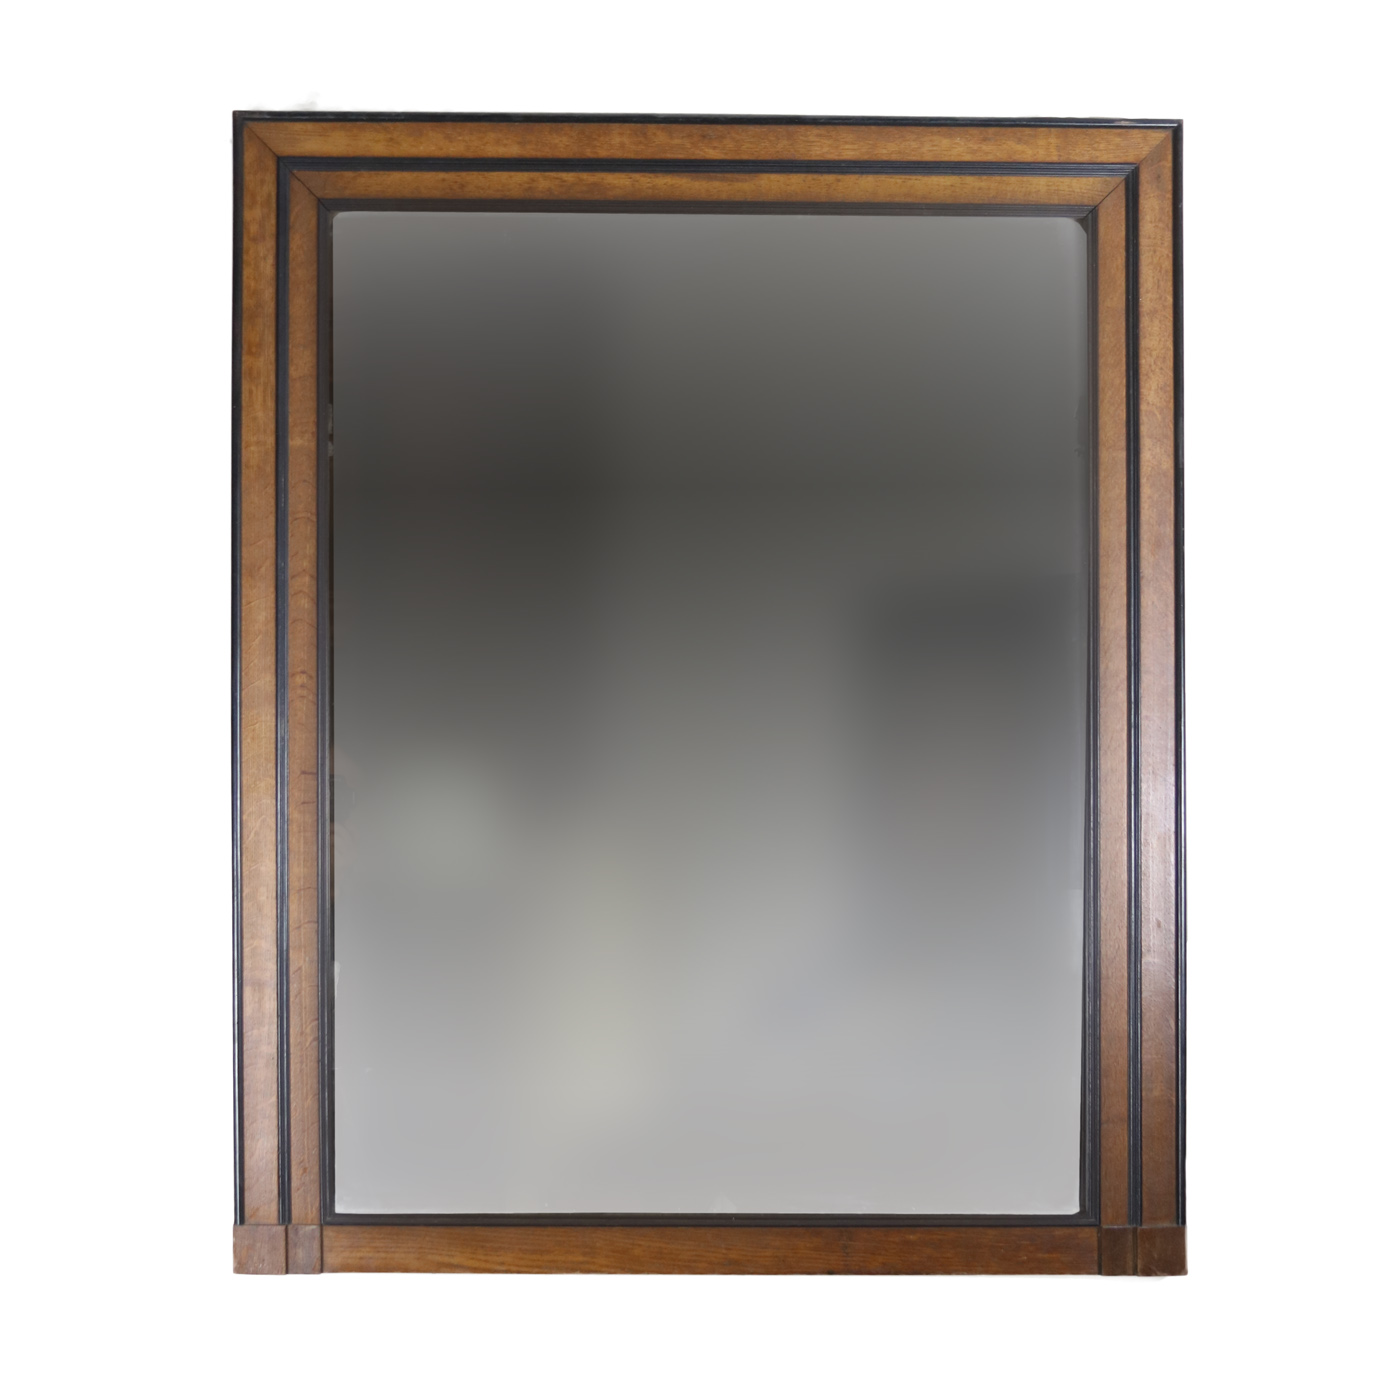 Handsome Large English Oak And Ebony Mirror Frame Circa 1840